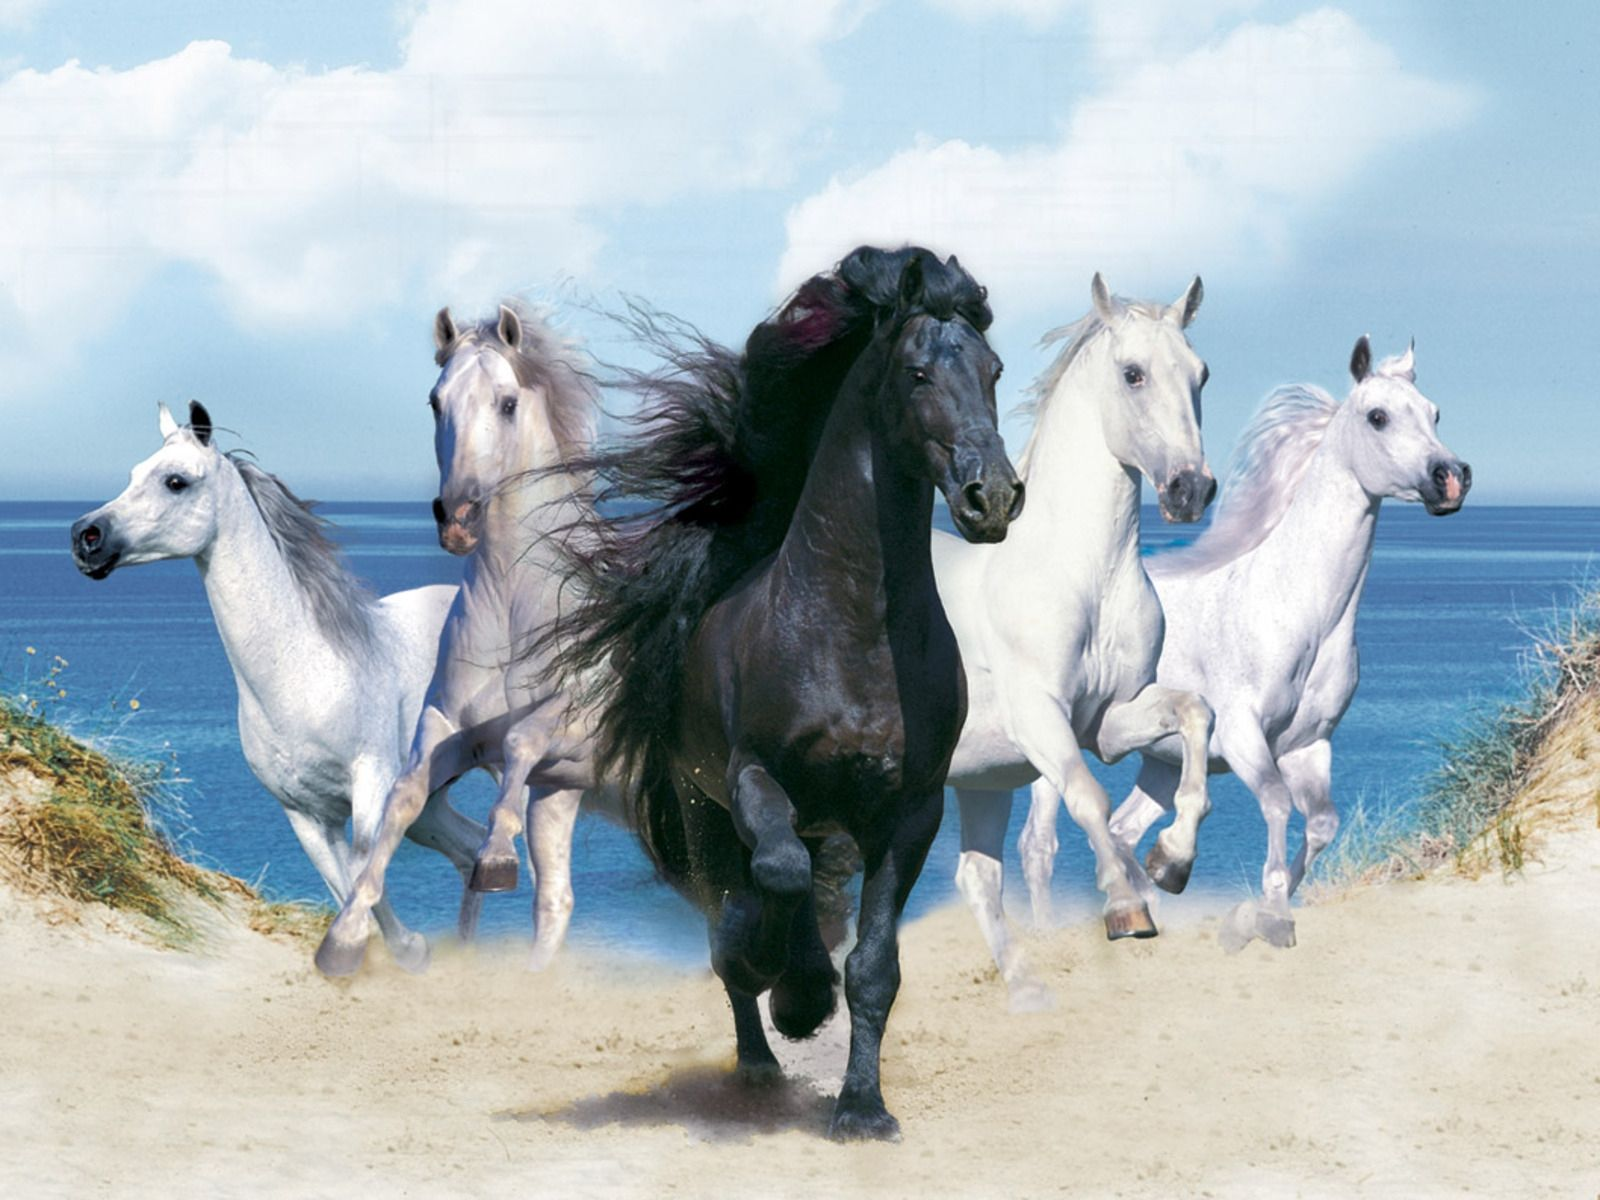 Black And White Horse On Land P Desktop Wallpapers Horse Wallpaper Animals Beautiful Horses